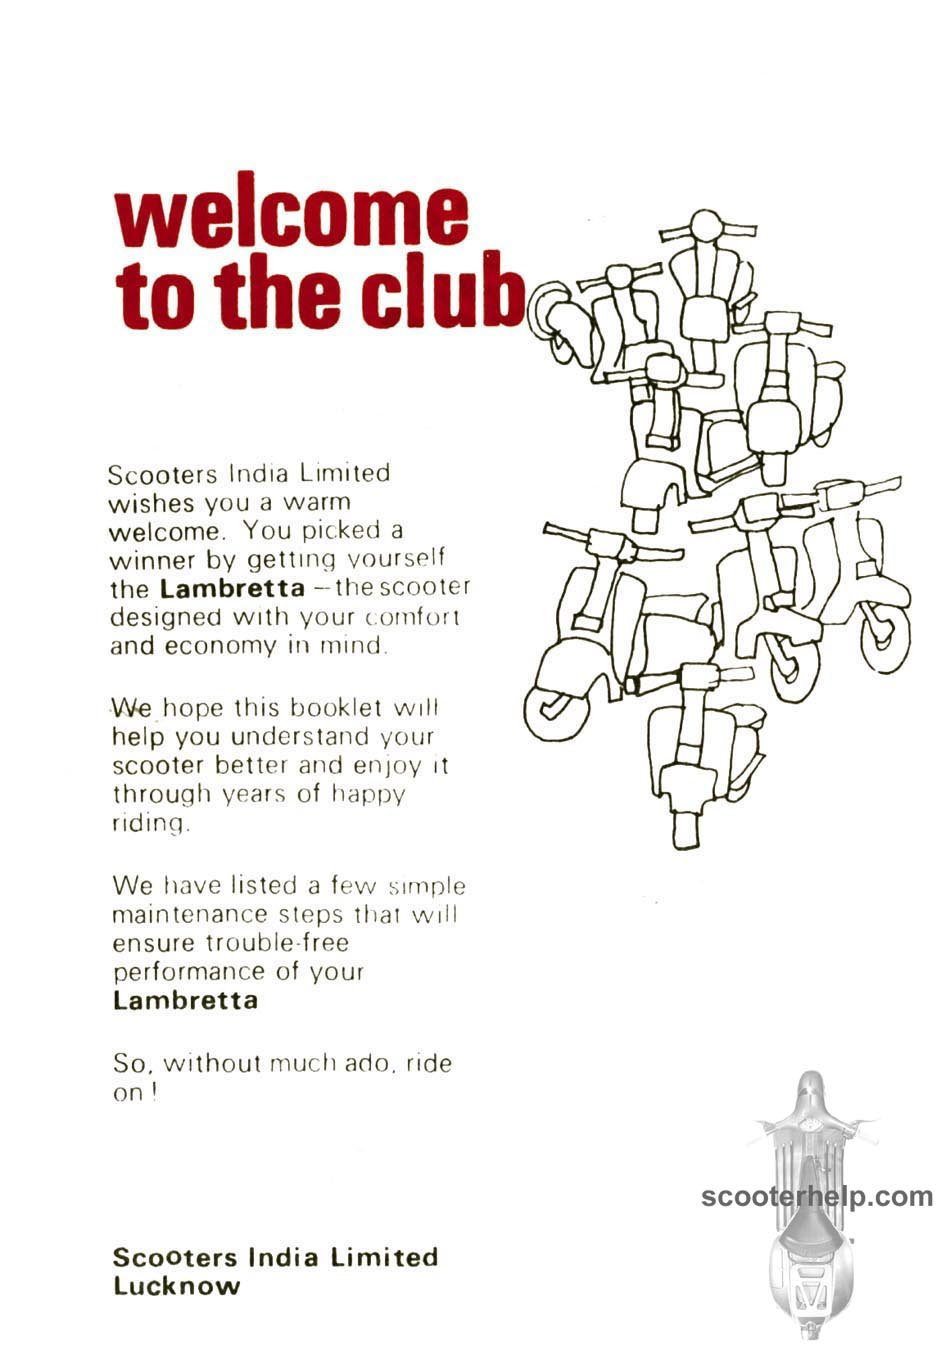 Sil Lambretta Dl 200 Owners Manual Wiring Diagram Click Individual Pages For Images Or Here A High Resolution 42mb Pdf File